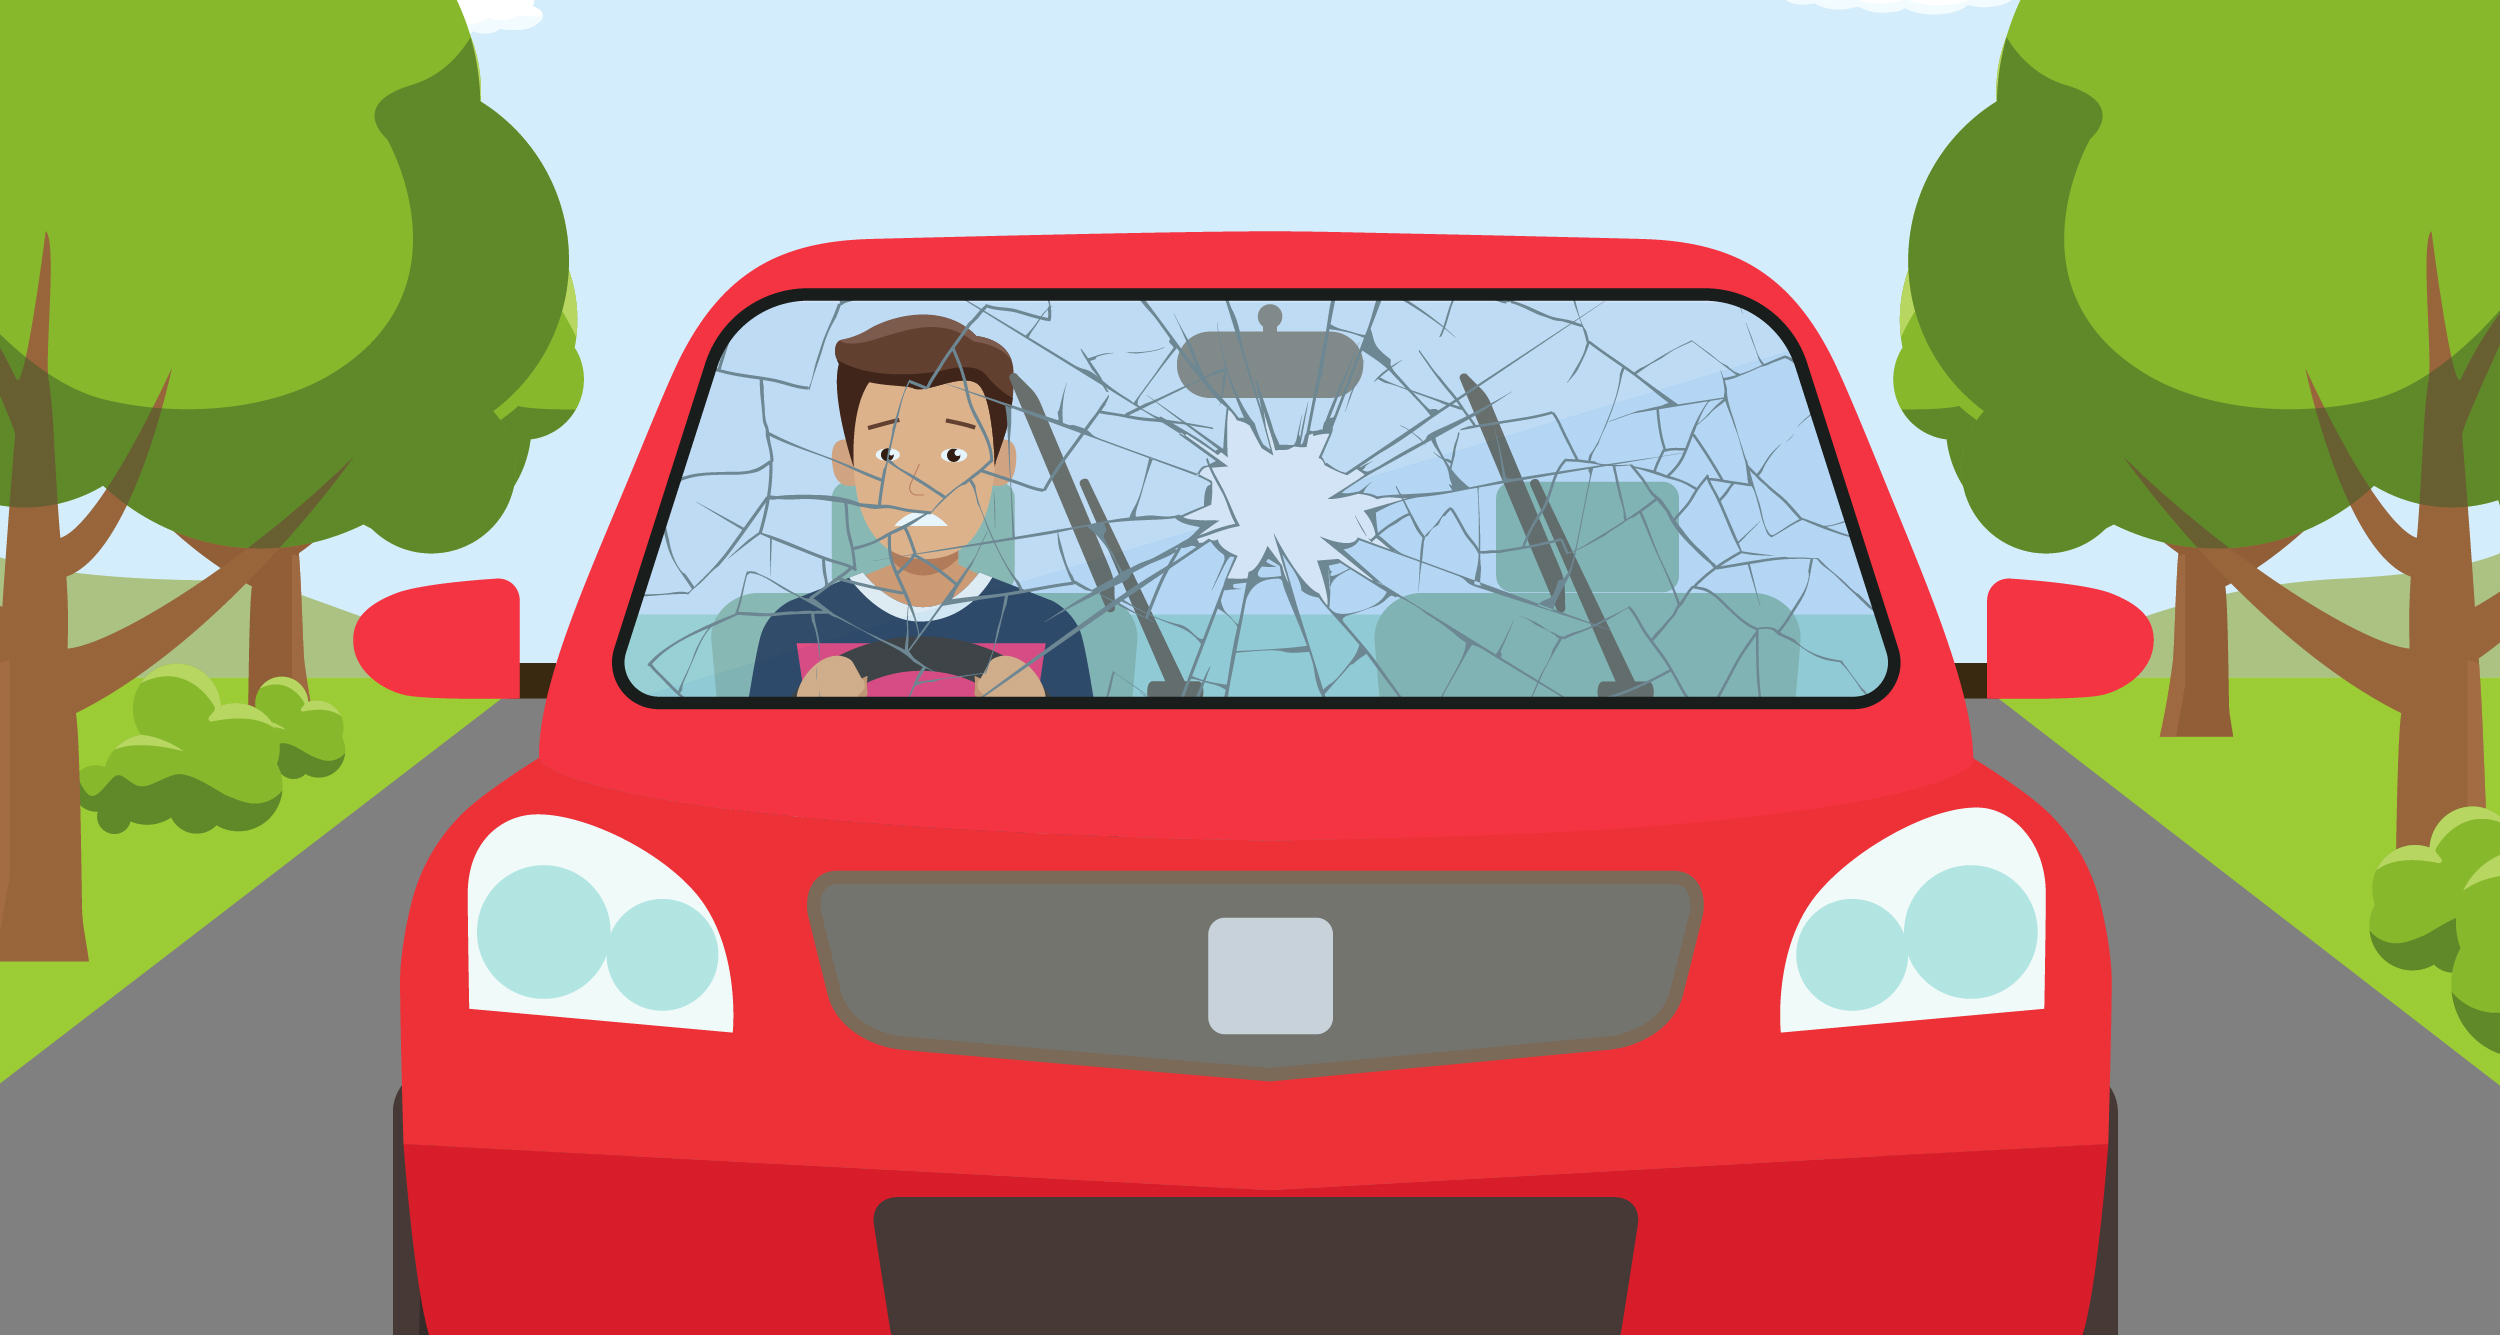 Windshield looking out clipart vector transparent library What To Do If Your Windscreen Breaks While Driving | The ... vector transparent library